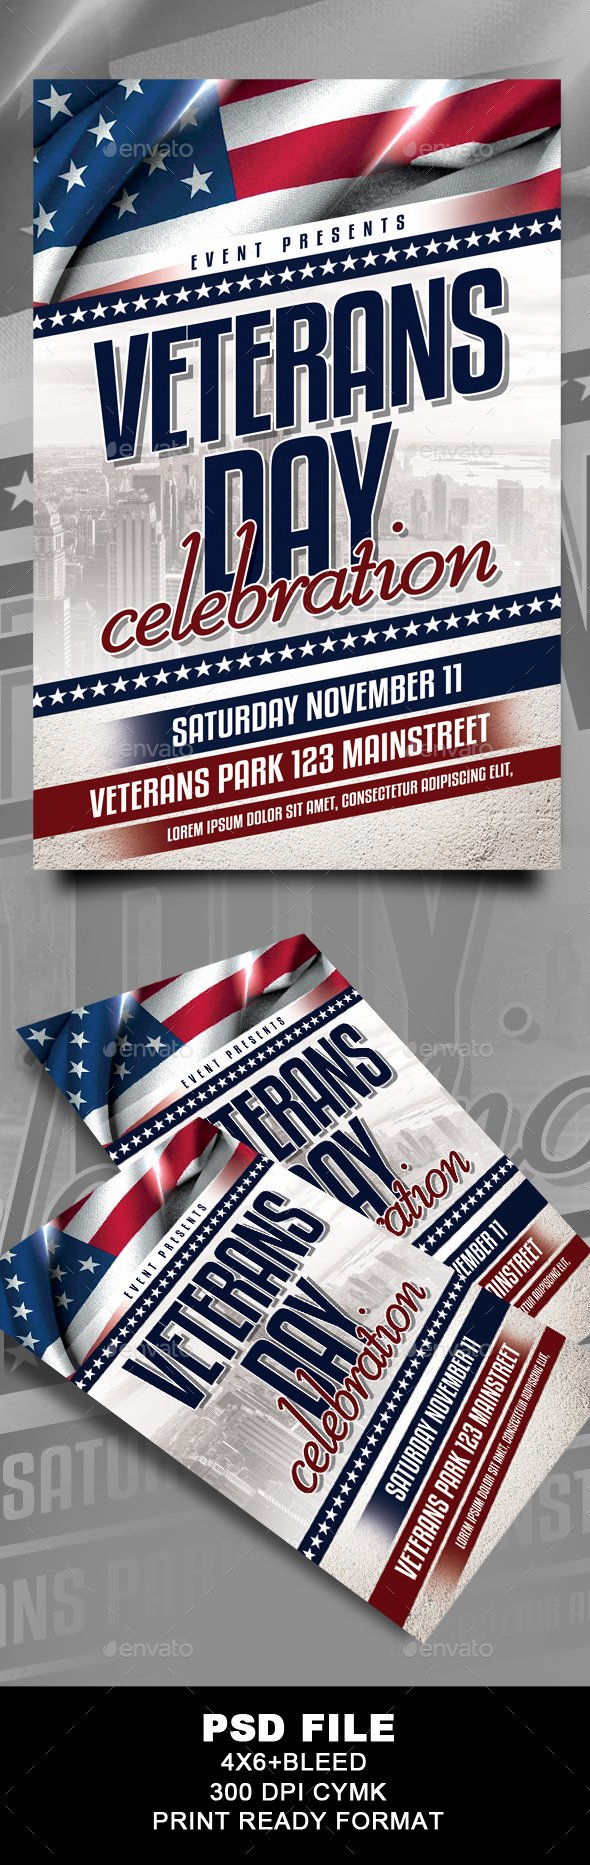 Veterans Day Flyer Templates Free Lovely Veterans Day Flyer by G4yuma